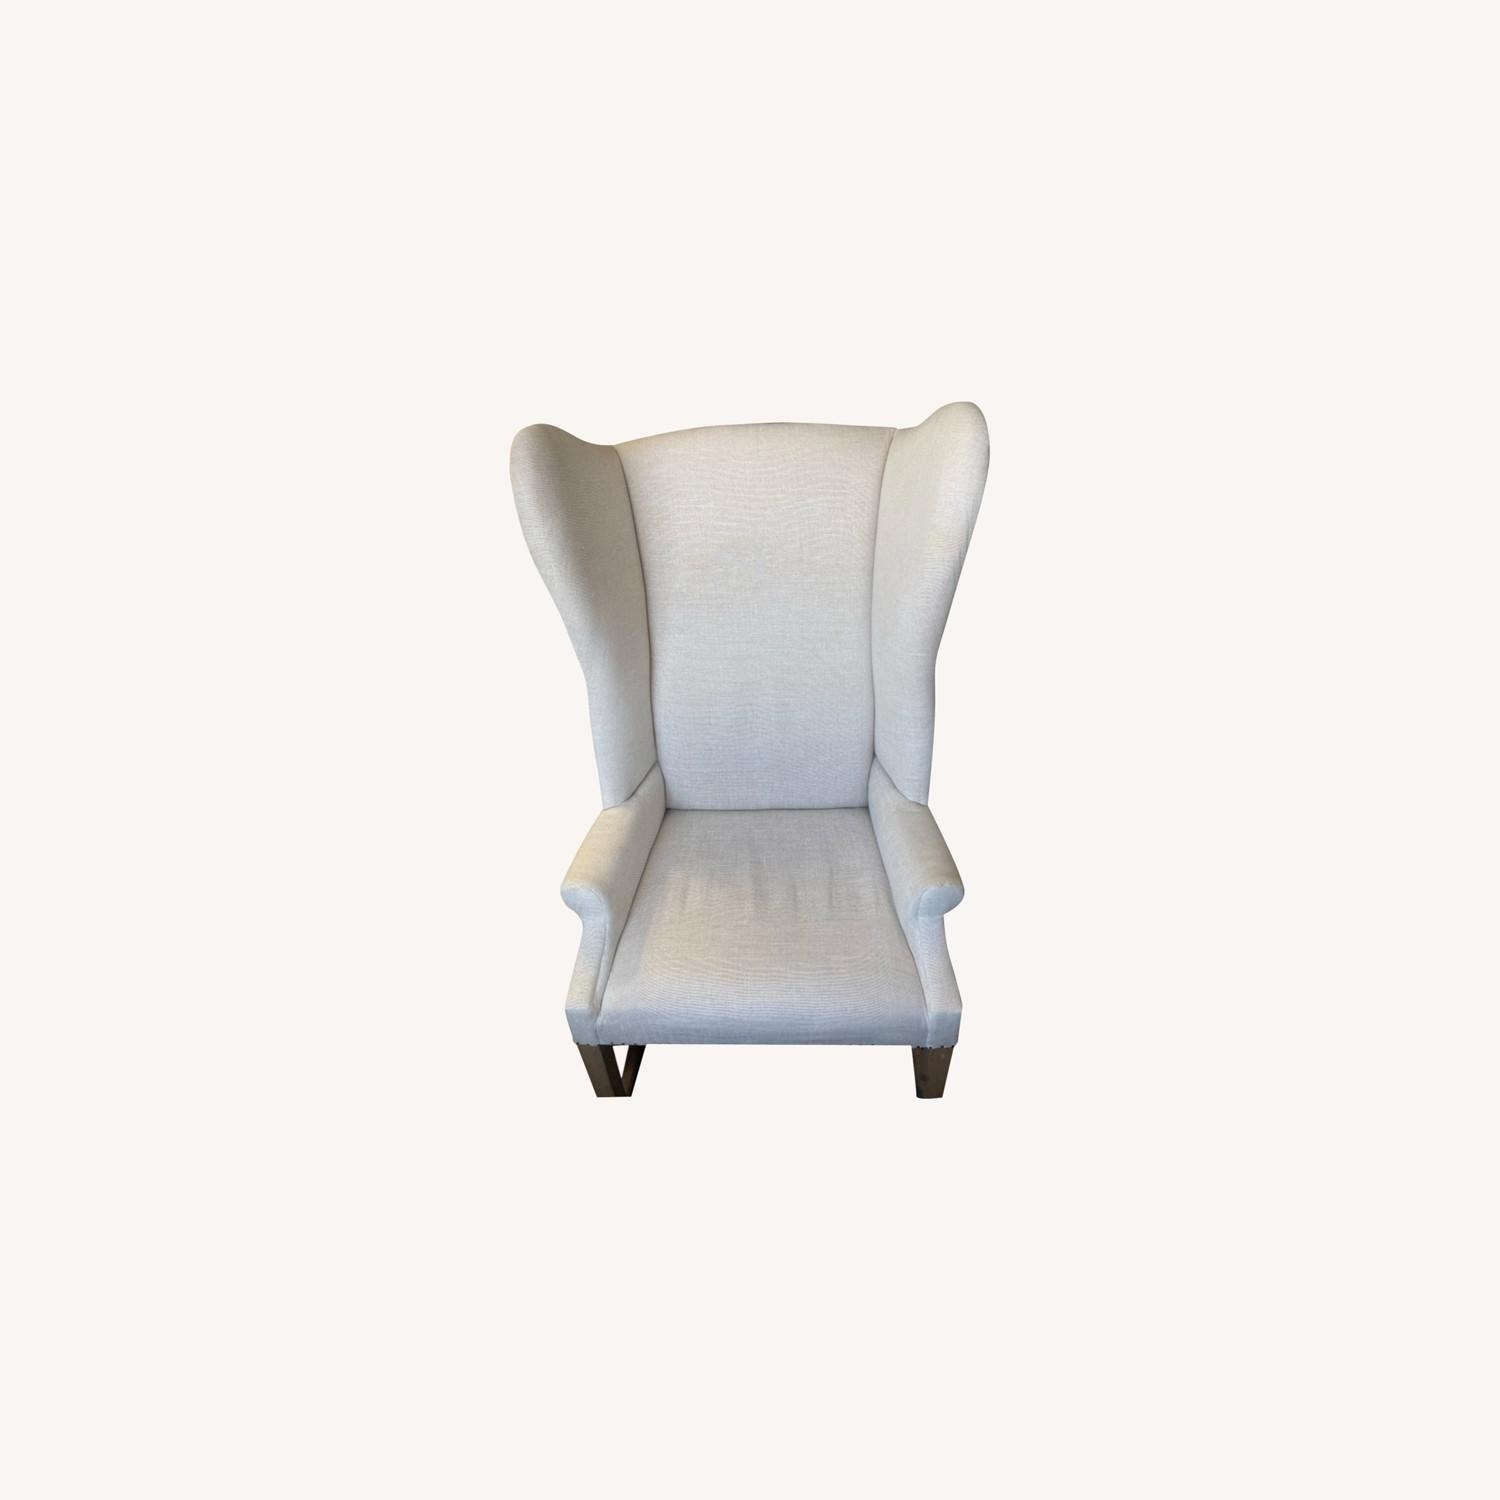 Restoration Hardware French Wingback Chair - image-2